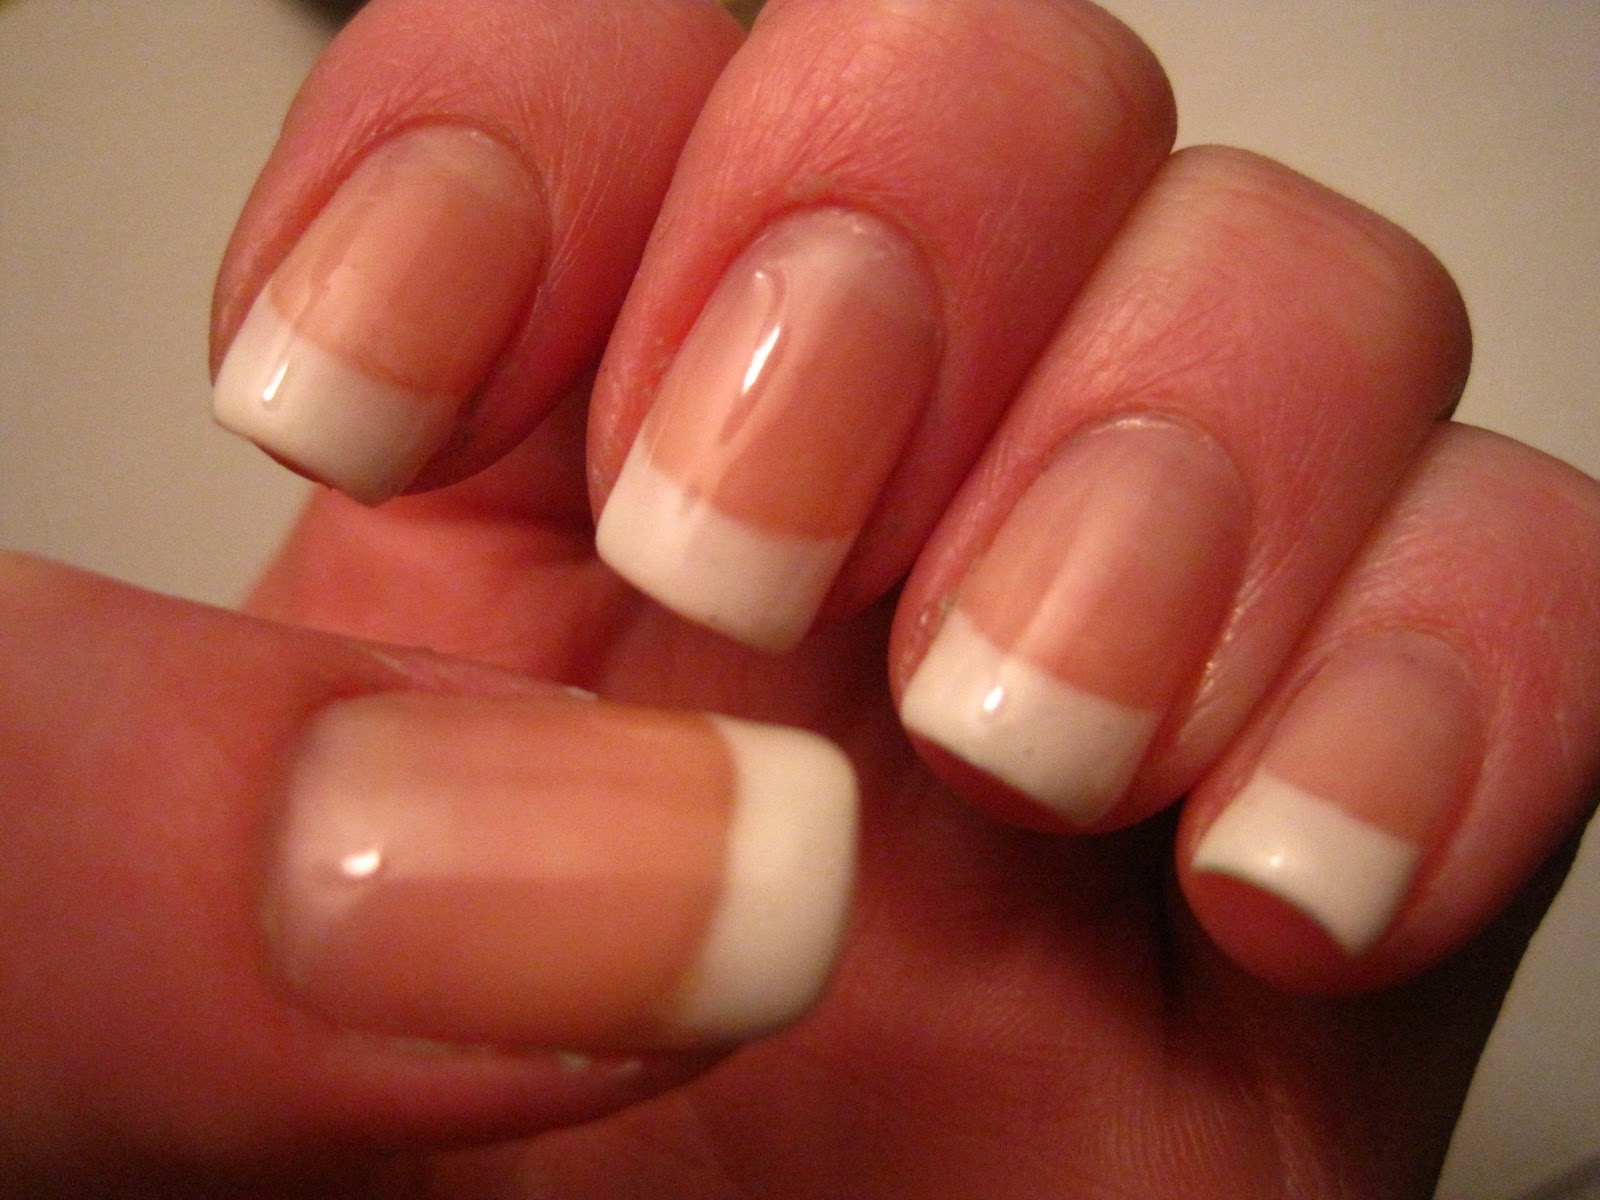 Manicure What Ails You: A shellac manicure and review!